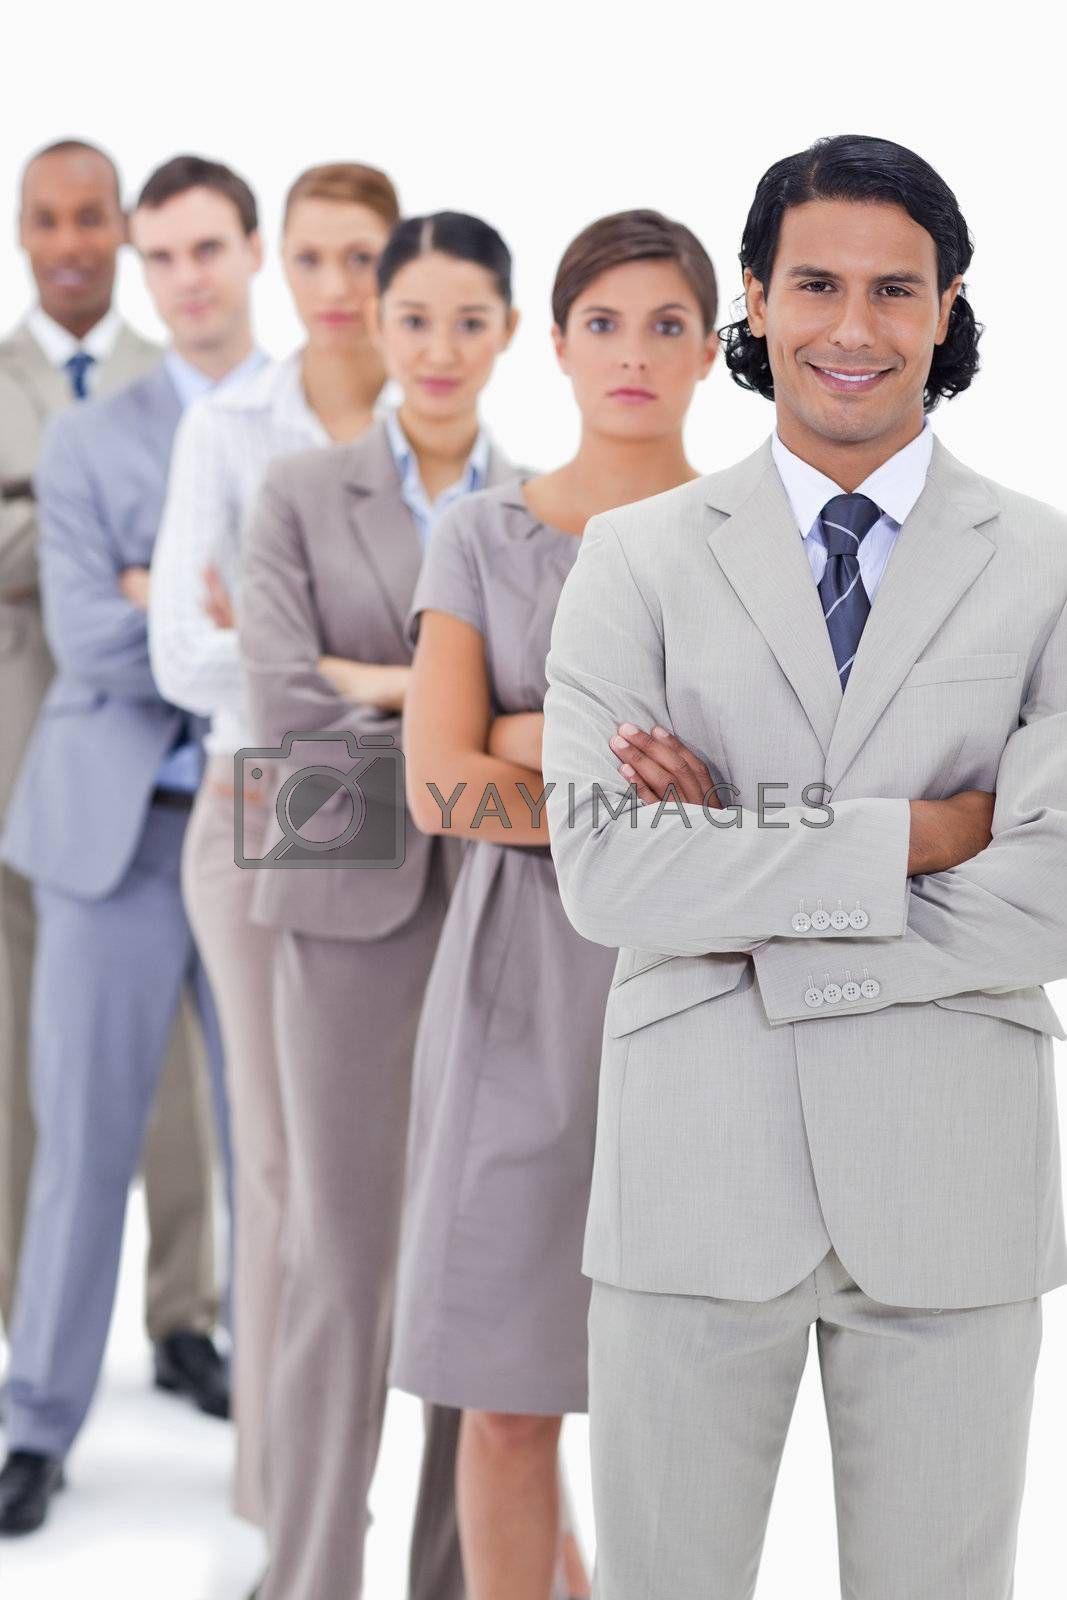 Close-up of a business team crossing their arms in a single line with focus on the first man smiling